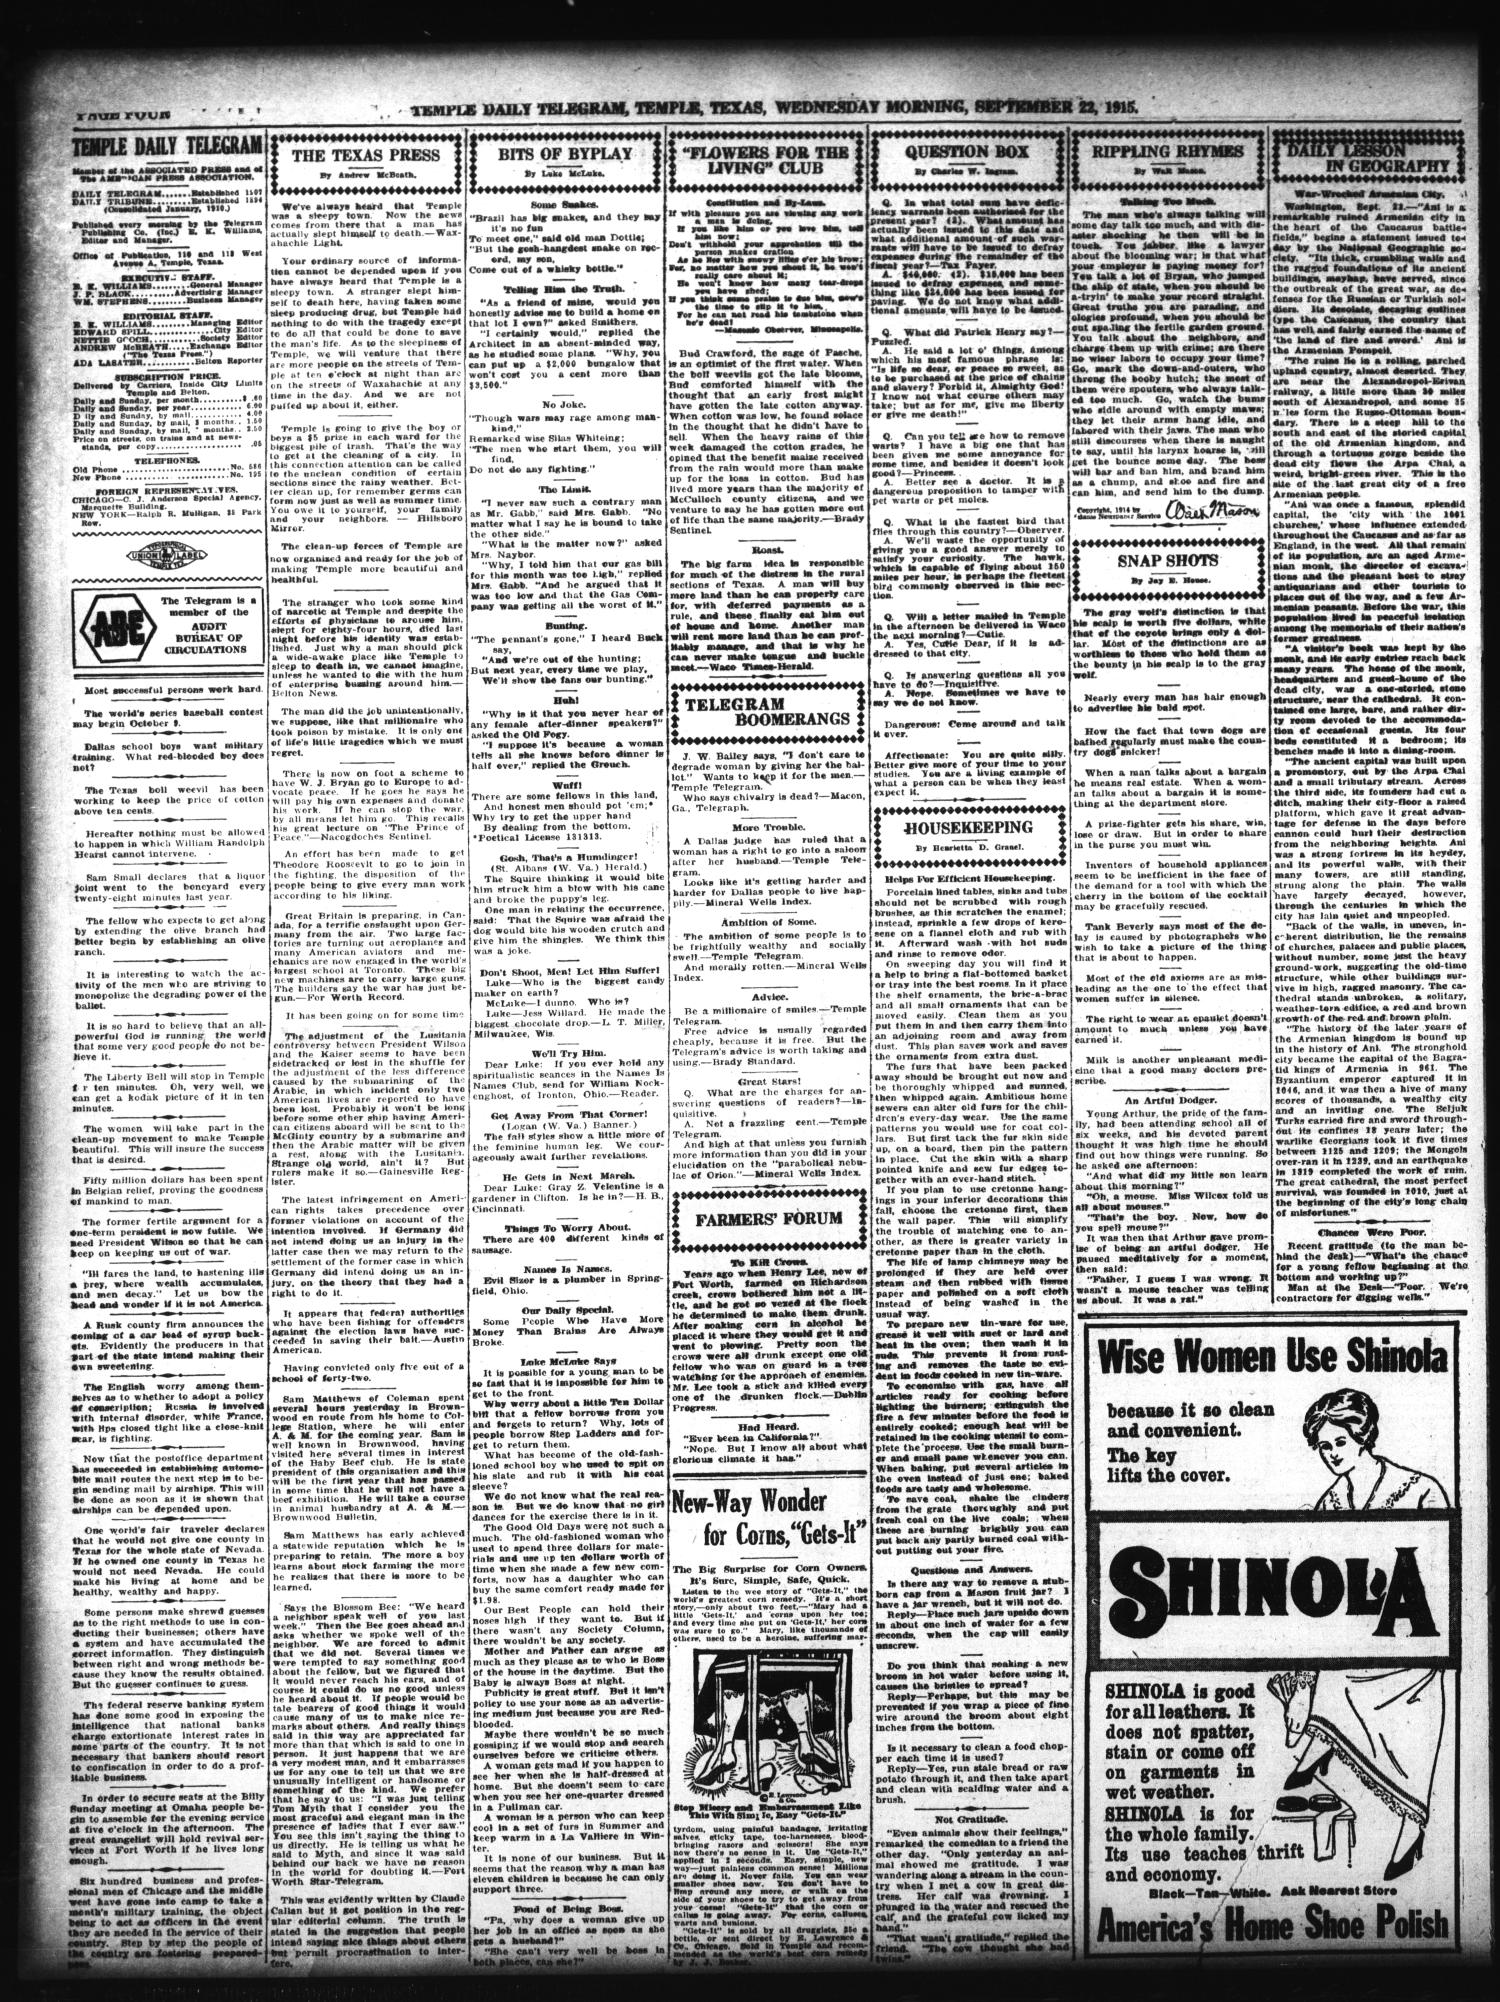 Temple Daily Telegram (Temple, Tex.), Vol. 8, No. 309, Ed. 1 Wednesday, September 22, 1915                                                                                                      [Sequence #]: 4 of 8